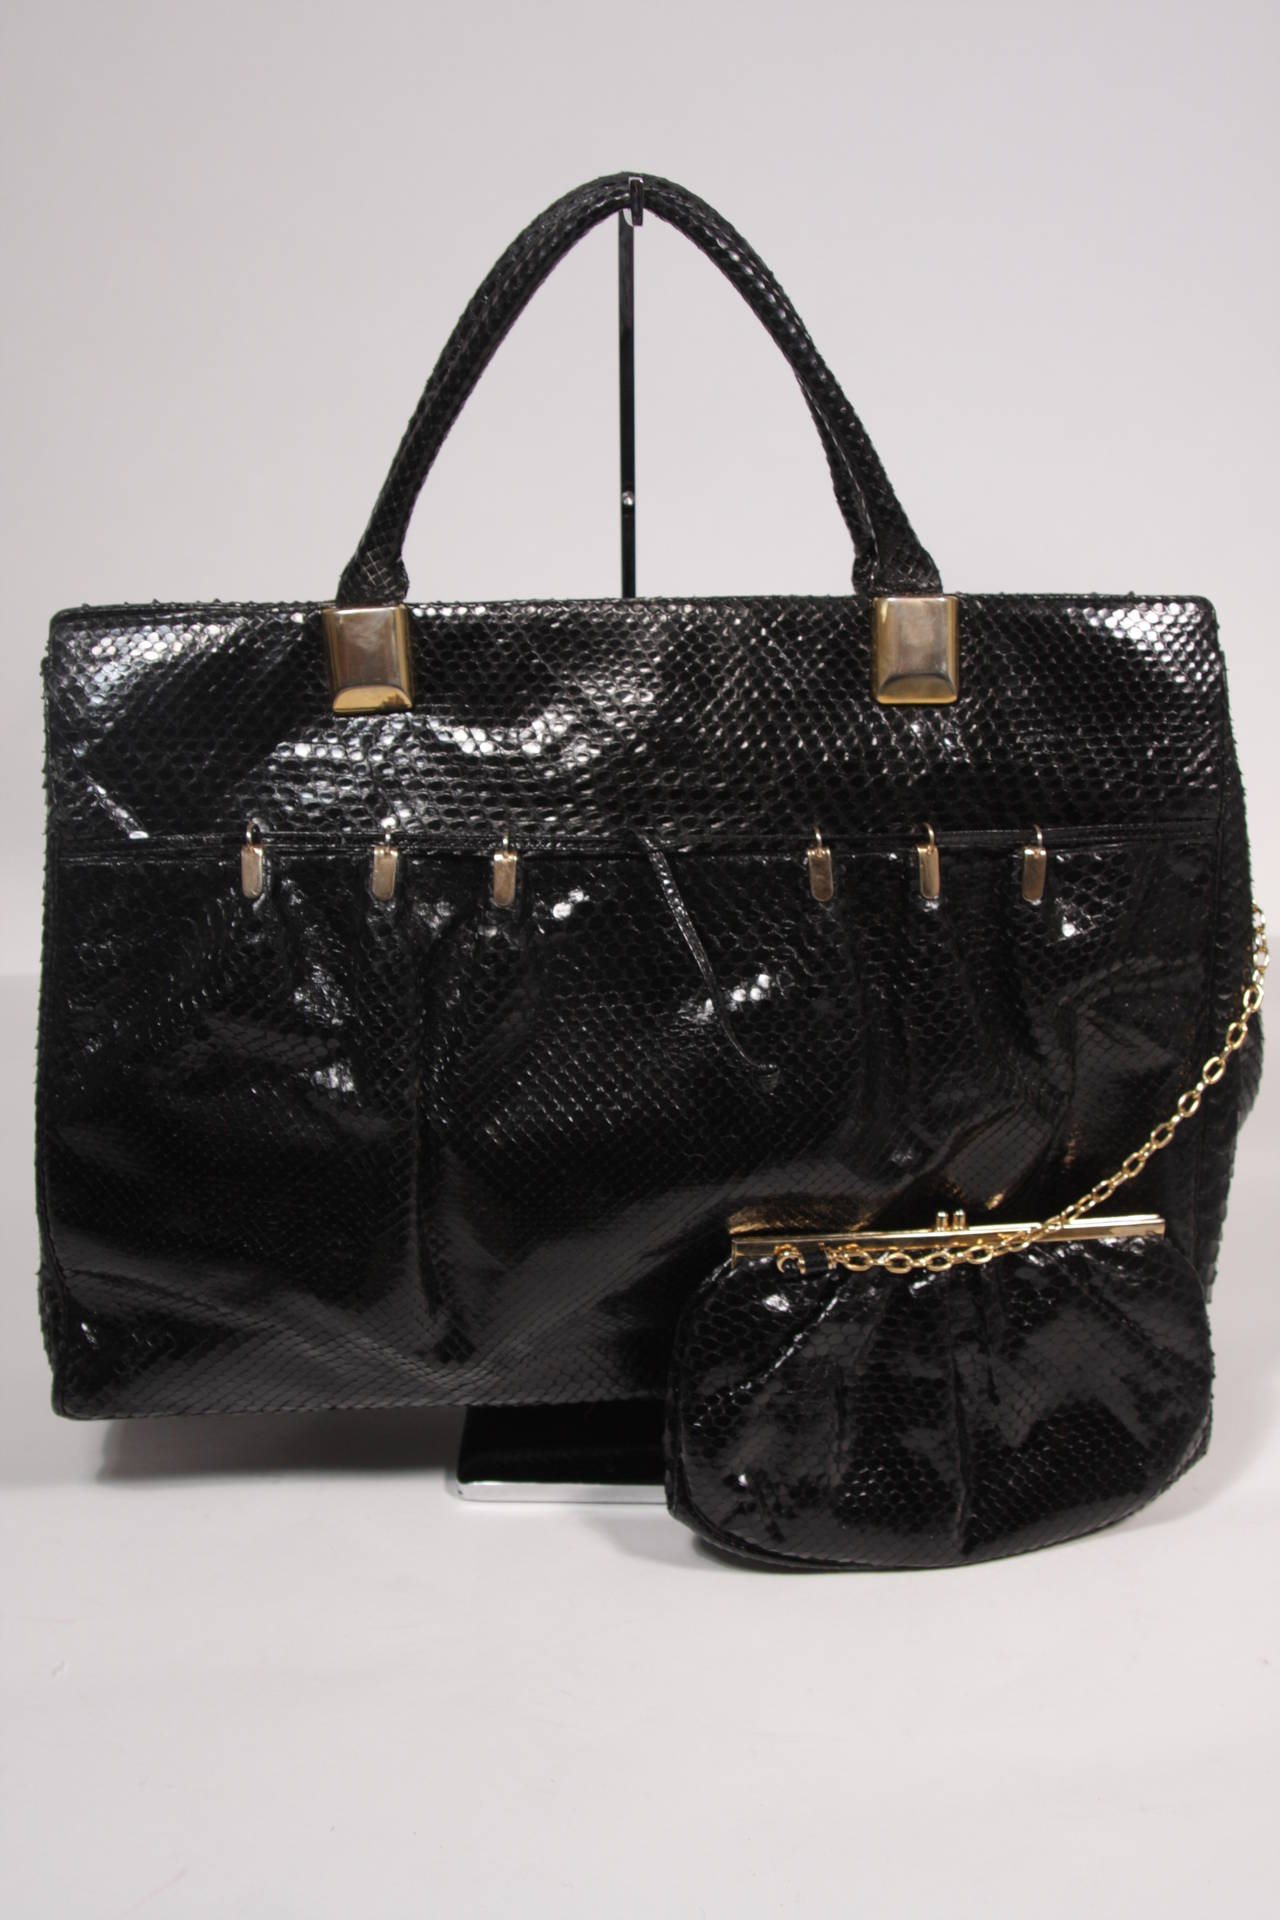 This is a gorgeous Judith Leiber purse. The handbag is composed of a striking black snakeskin and features a front pocket with gather details. There are two interior zipper compartments and snap closures. Comes with large coin purse attached by gold